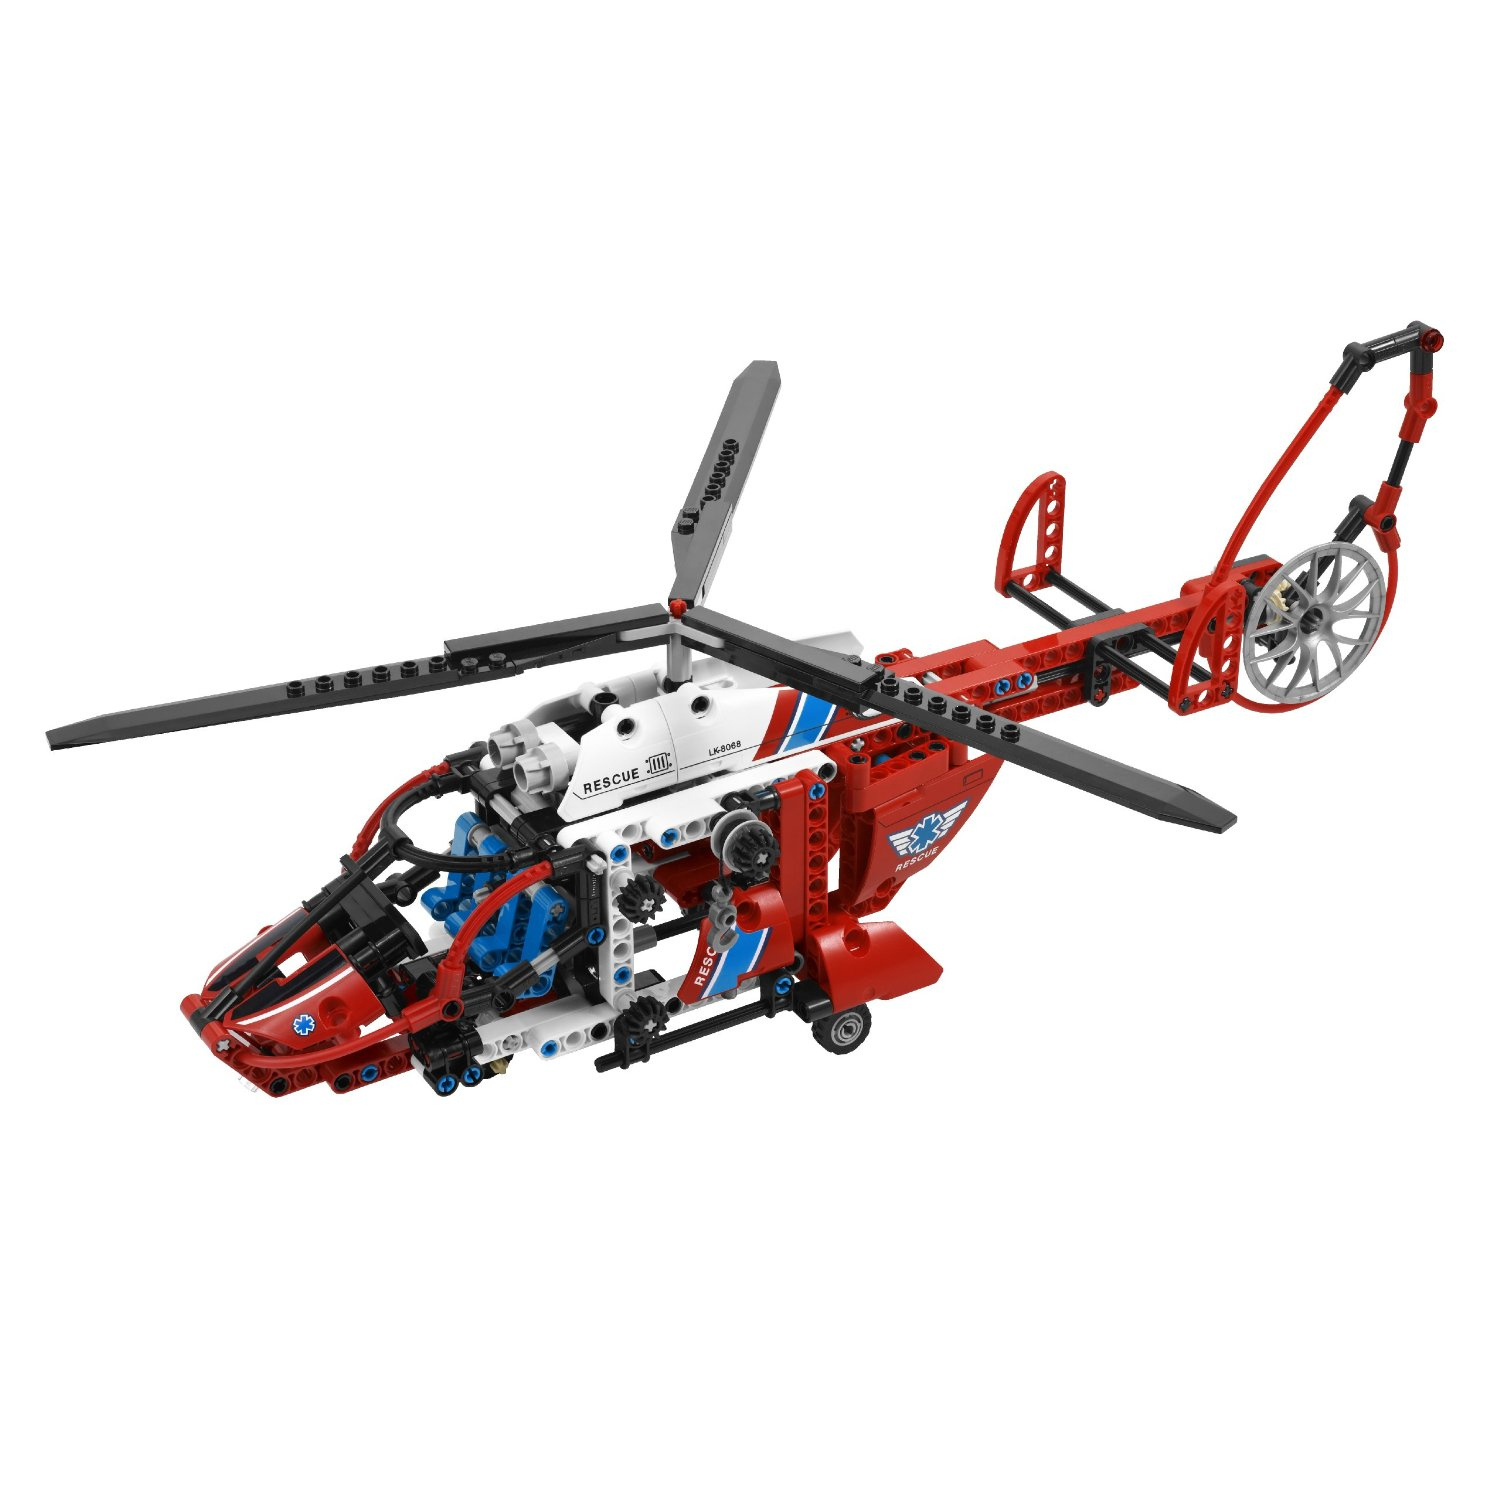 Ultrajeux technic l h licopt re de secours lego - Jeux de construction lego technic ...